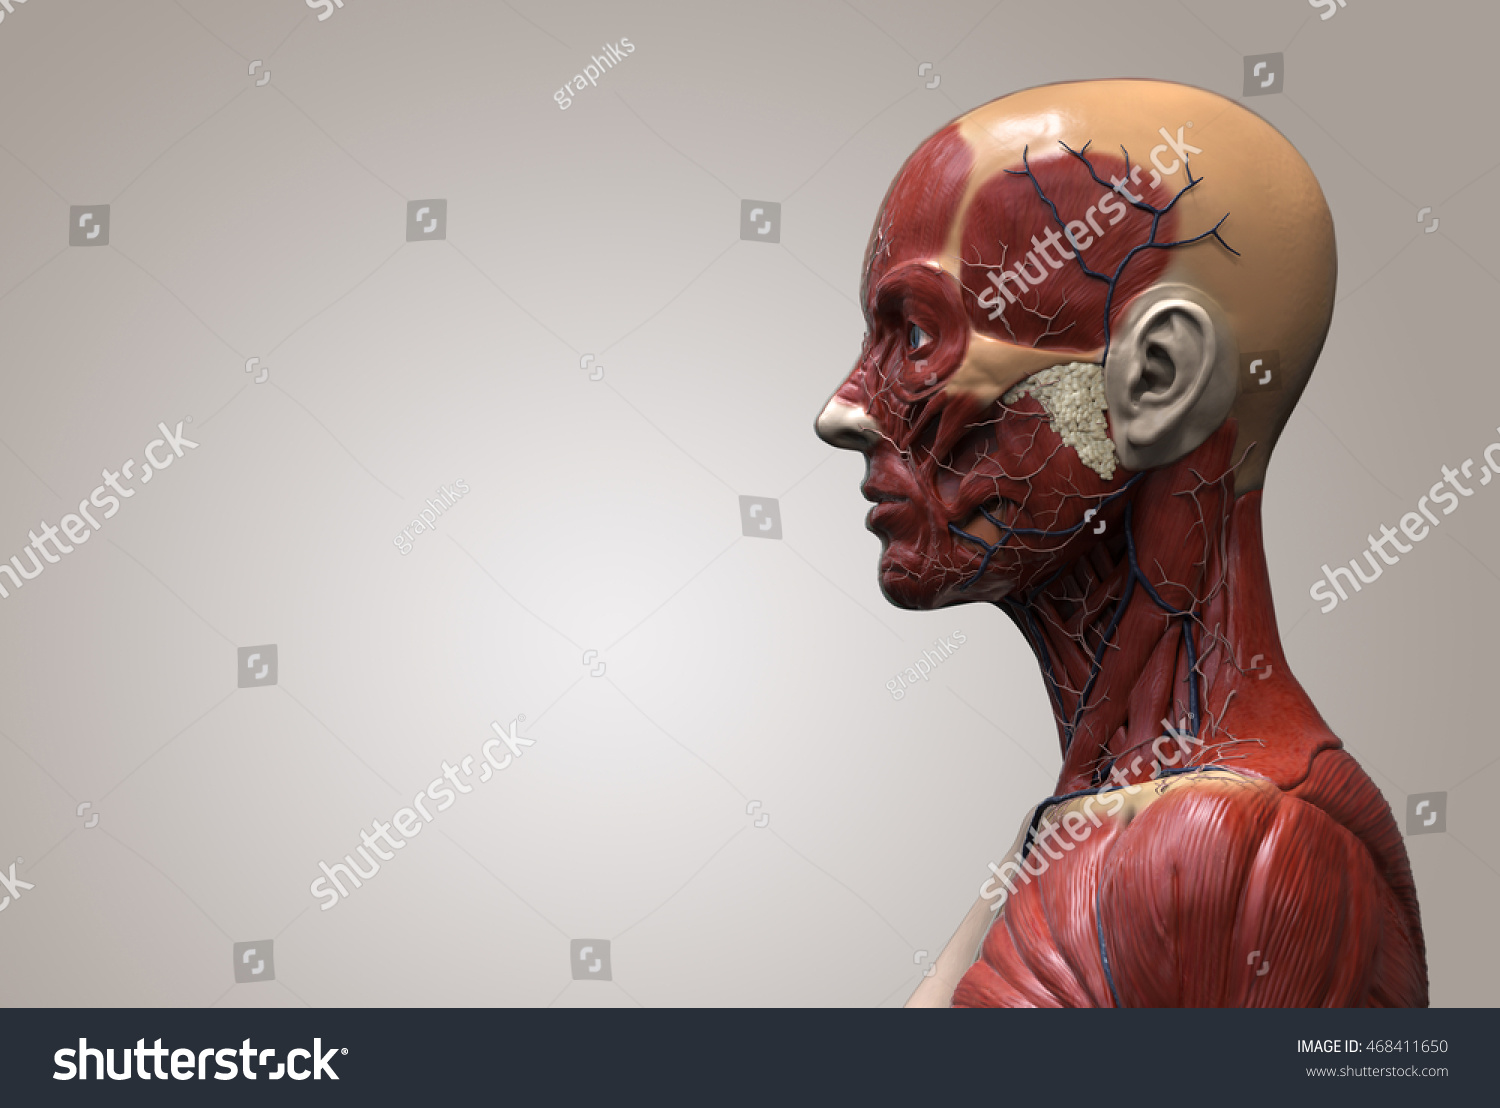 hight resolution of human anatomy muscle anatomy of the face neck and shoulder of a female side view